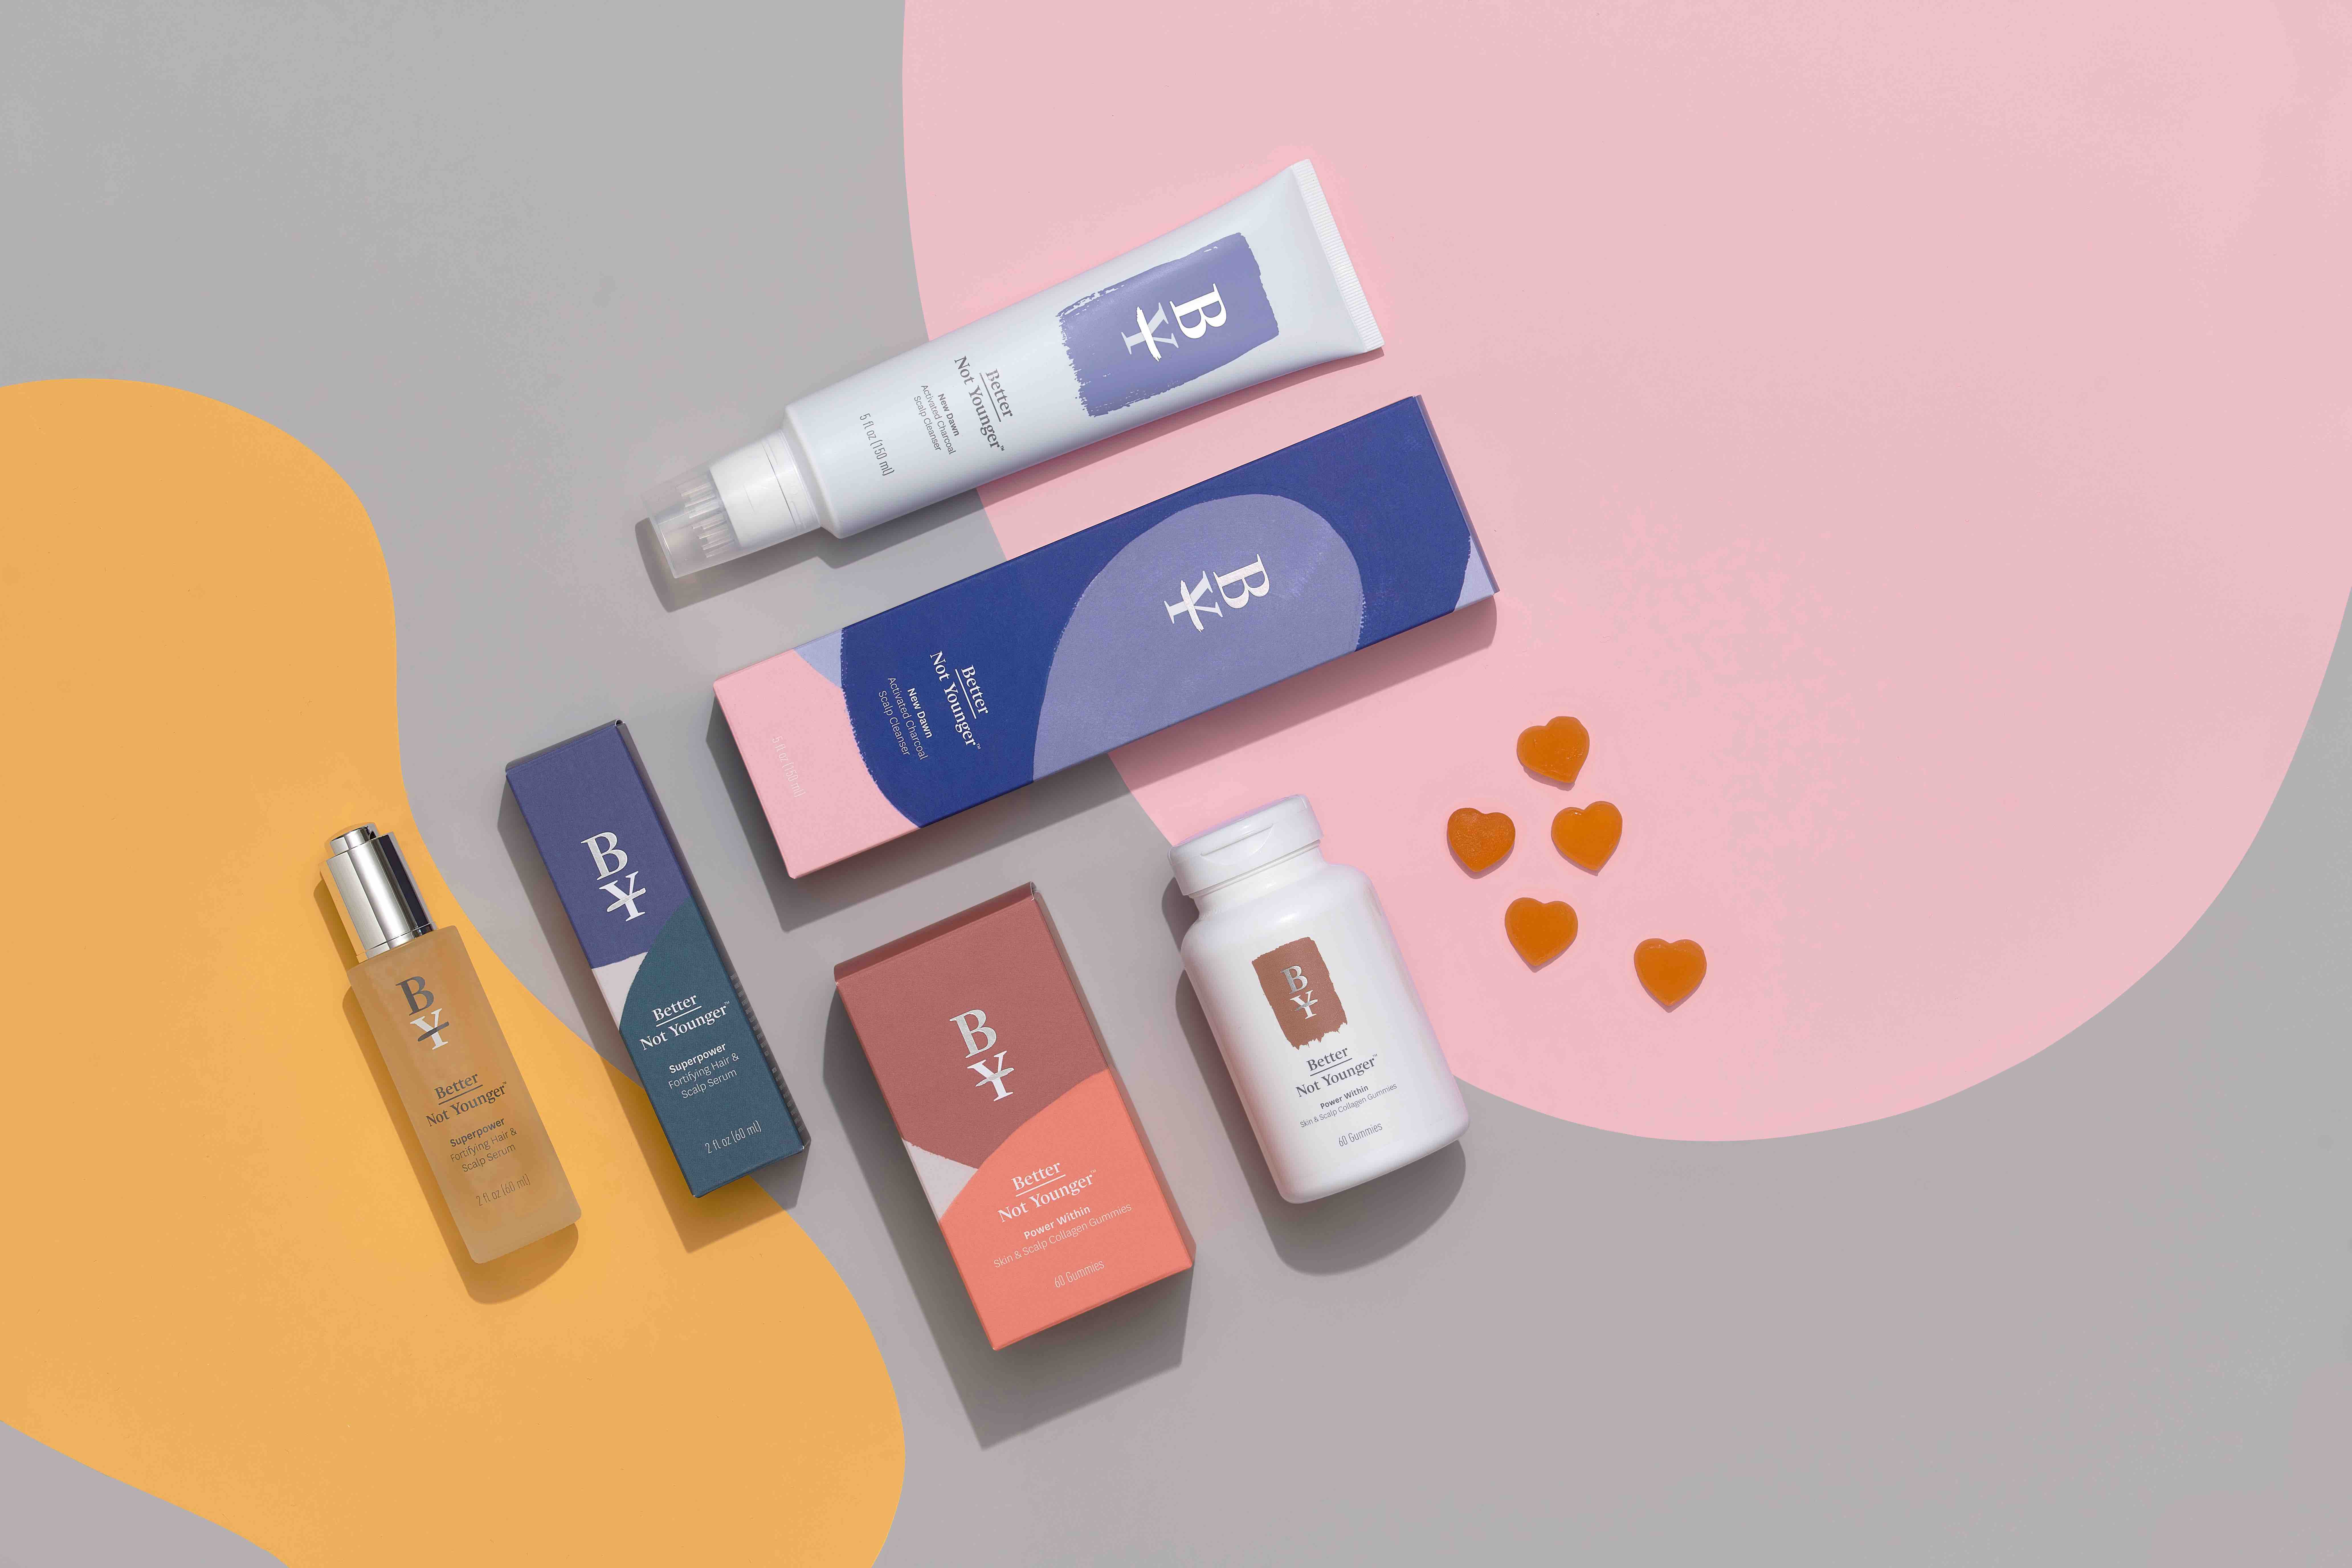 Better Not Younger Launches At Ulta Beauty, Gen Z's Favorite Beauty Retailer, To Serve Gen X And Baby Boomer Consumers